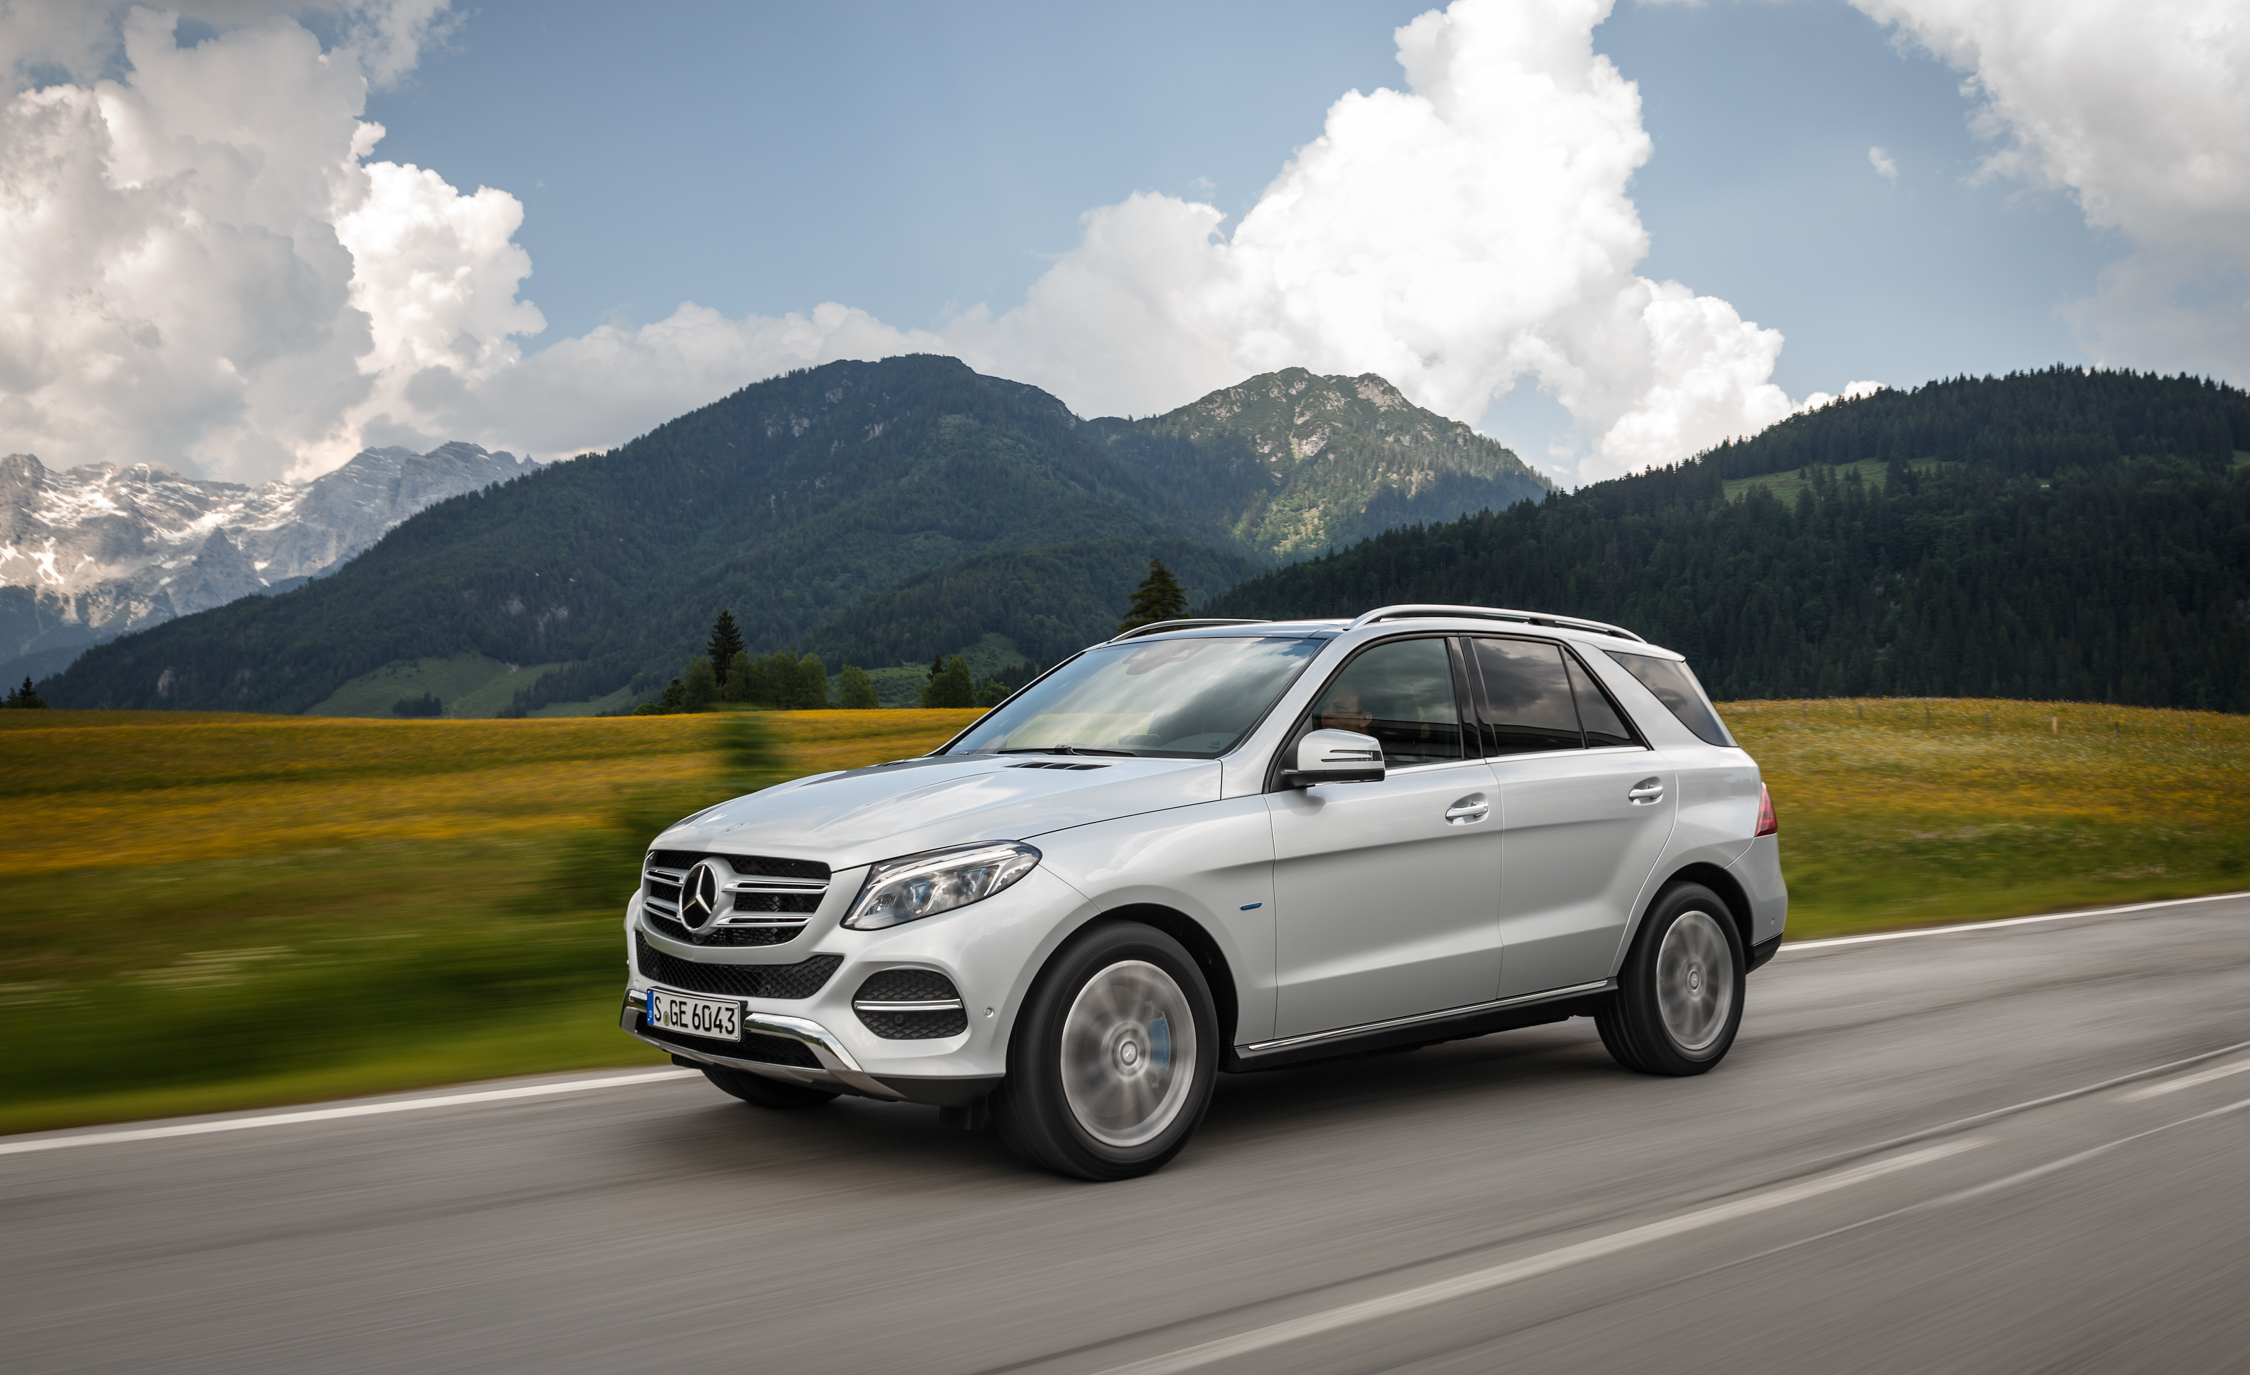 2016 Mercedes Benz GLE500e 4MATIC (View 35 of 43)